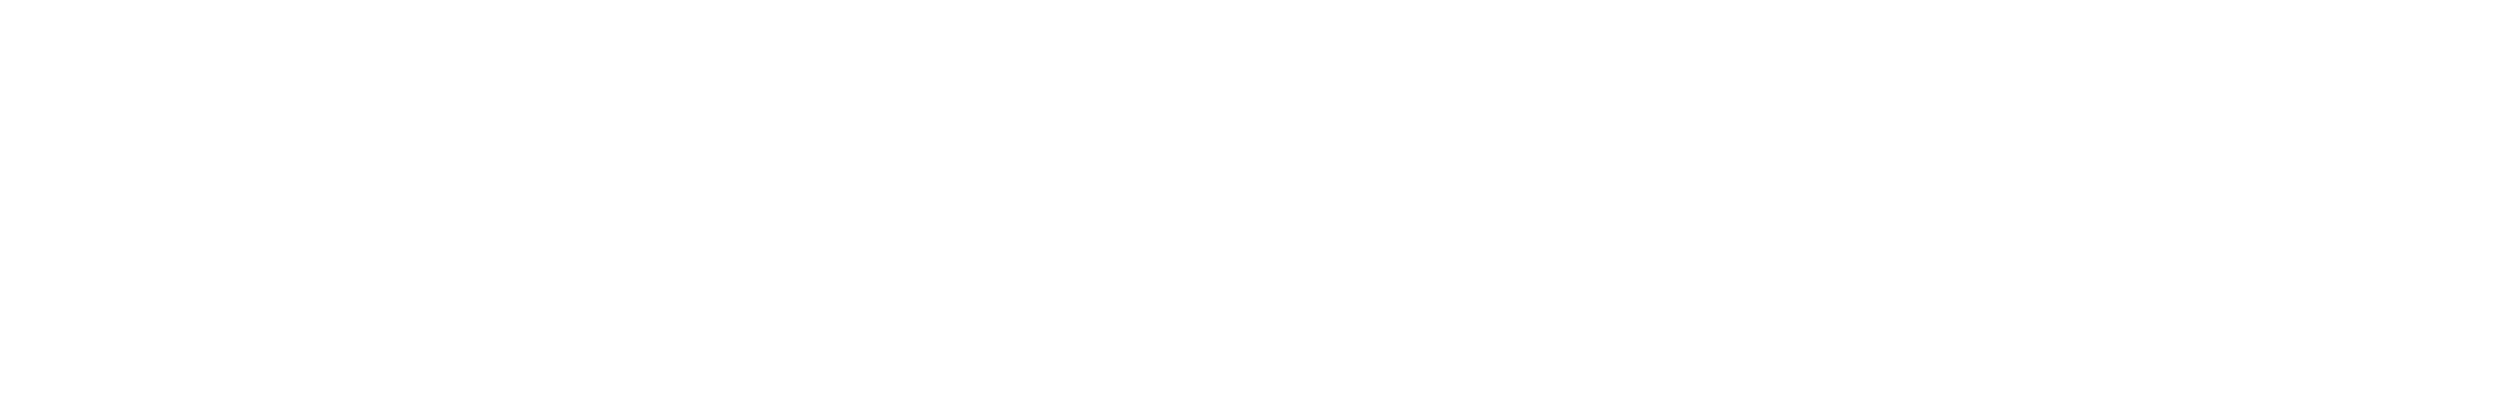 REMAX Niagara Logo Final Black no Balloon wide.png